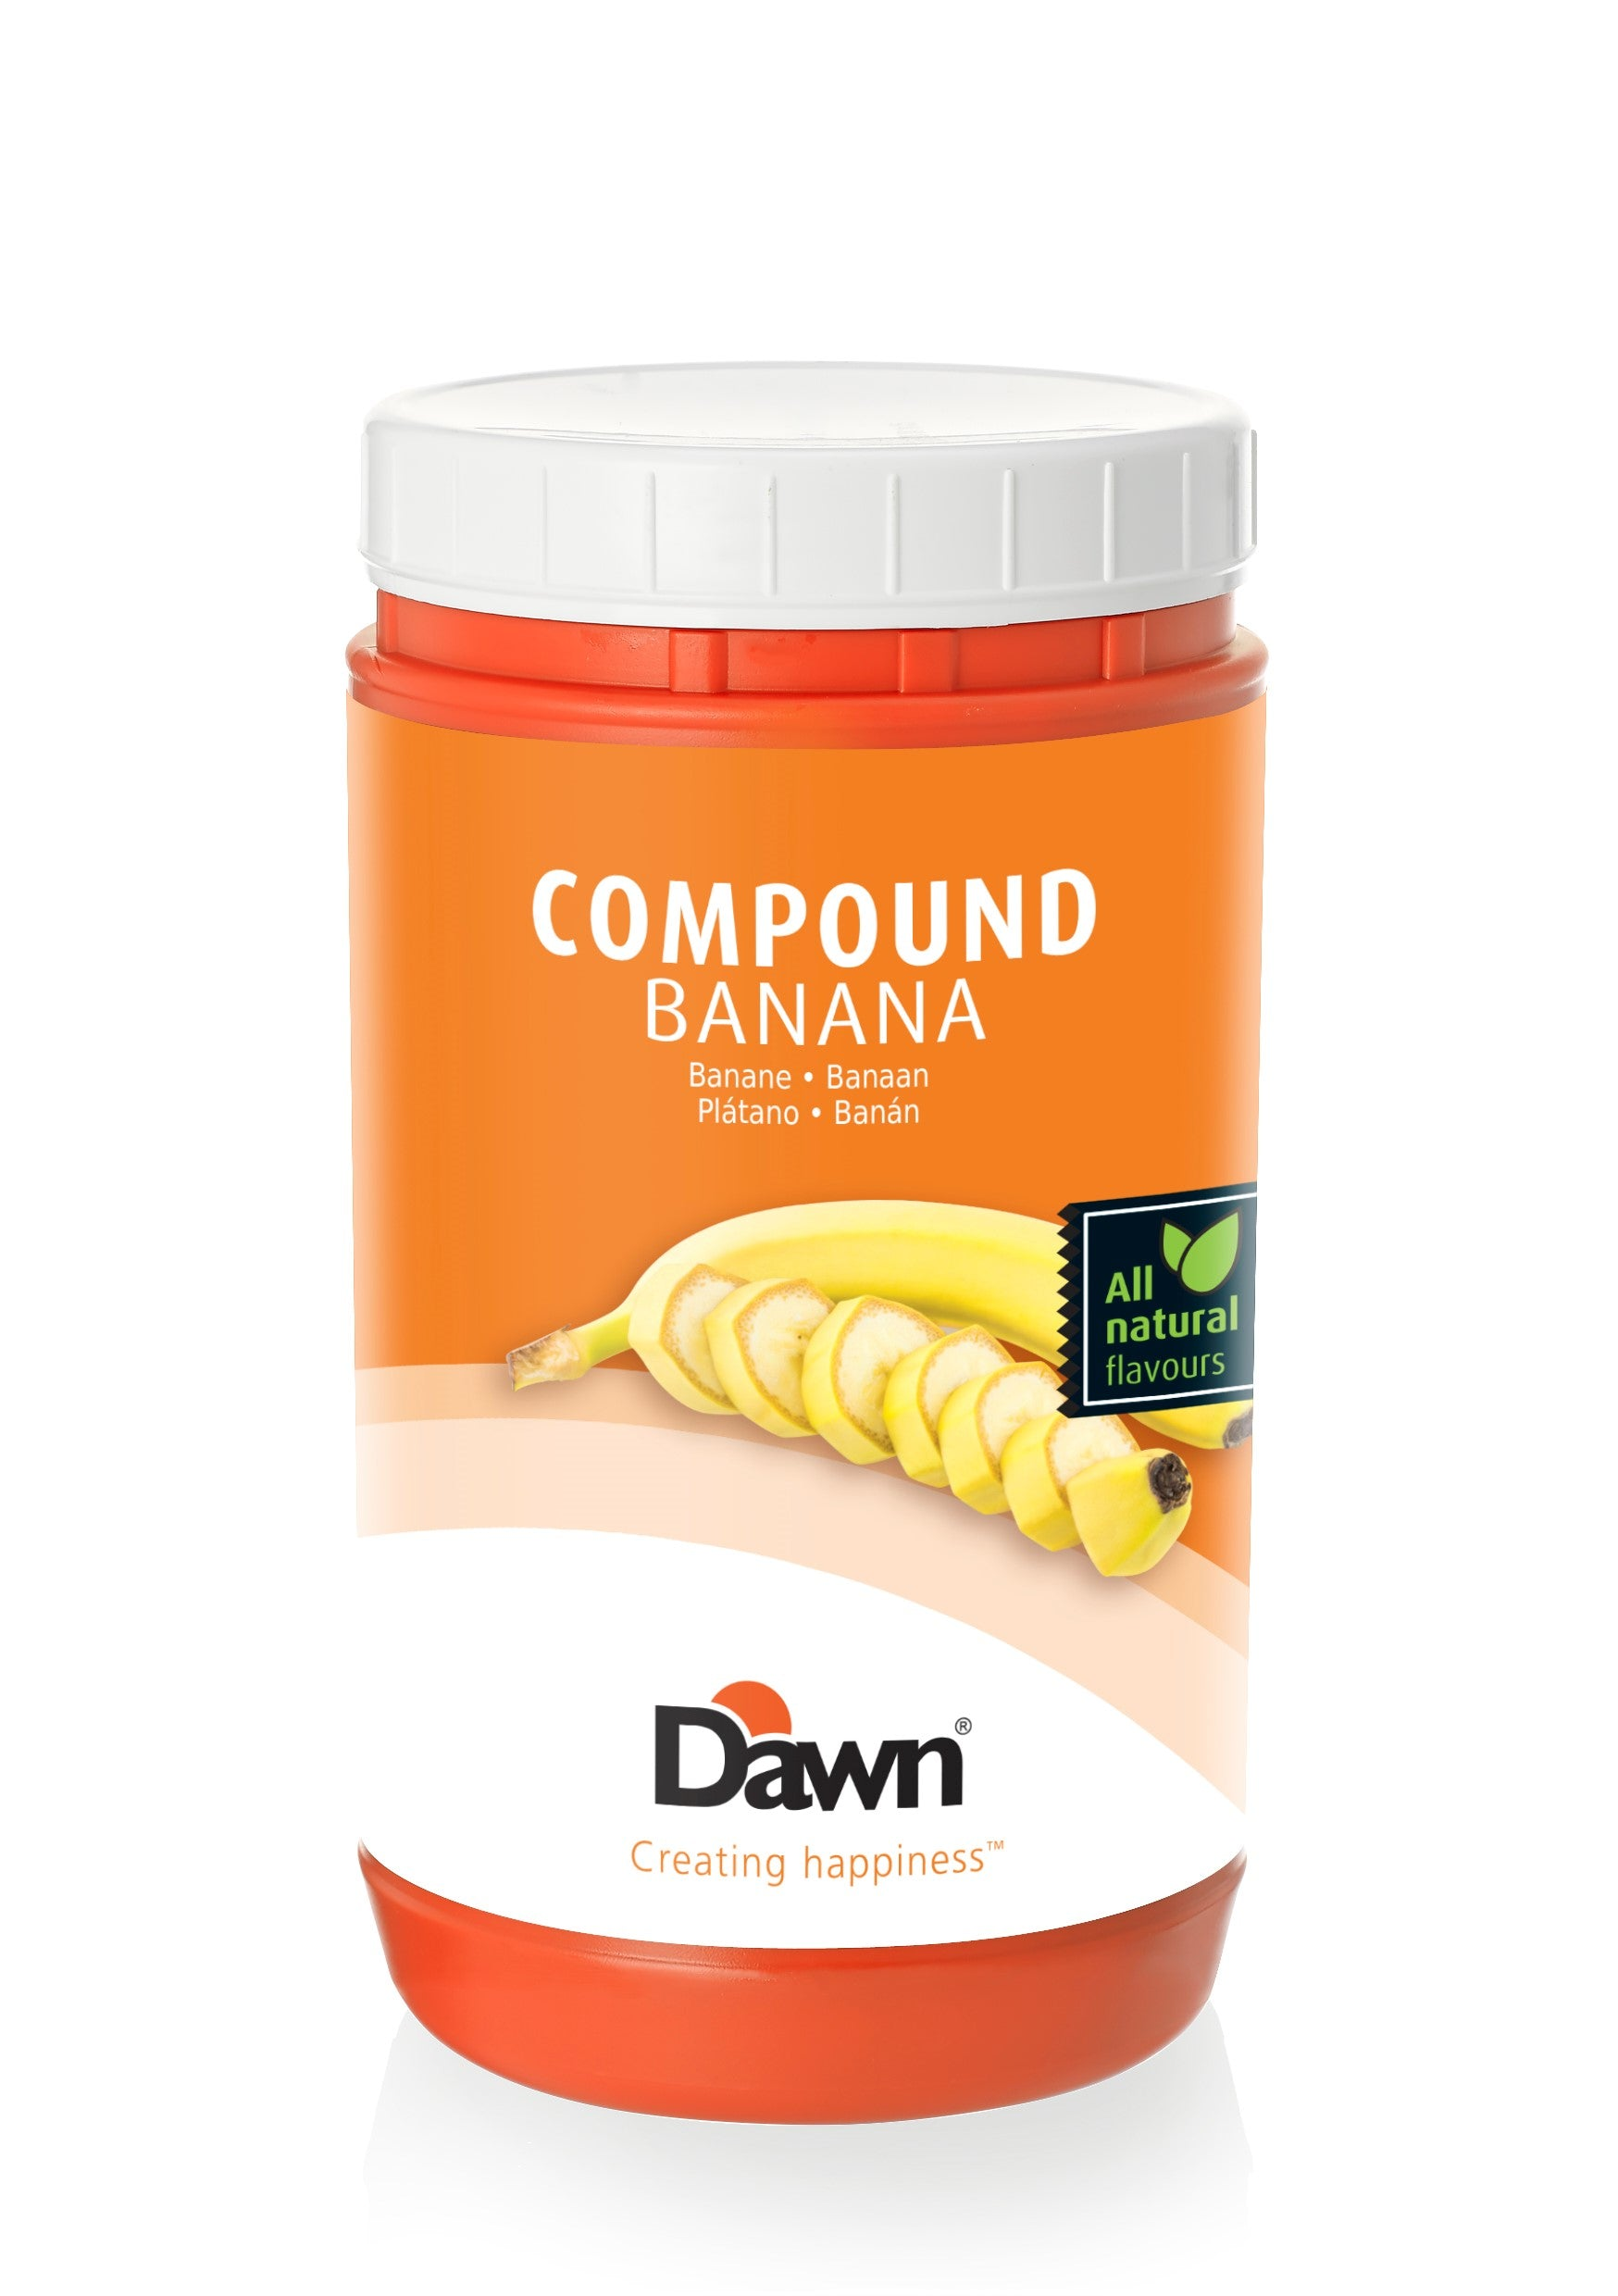 Compound Banana